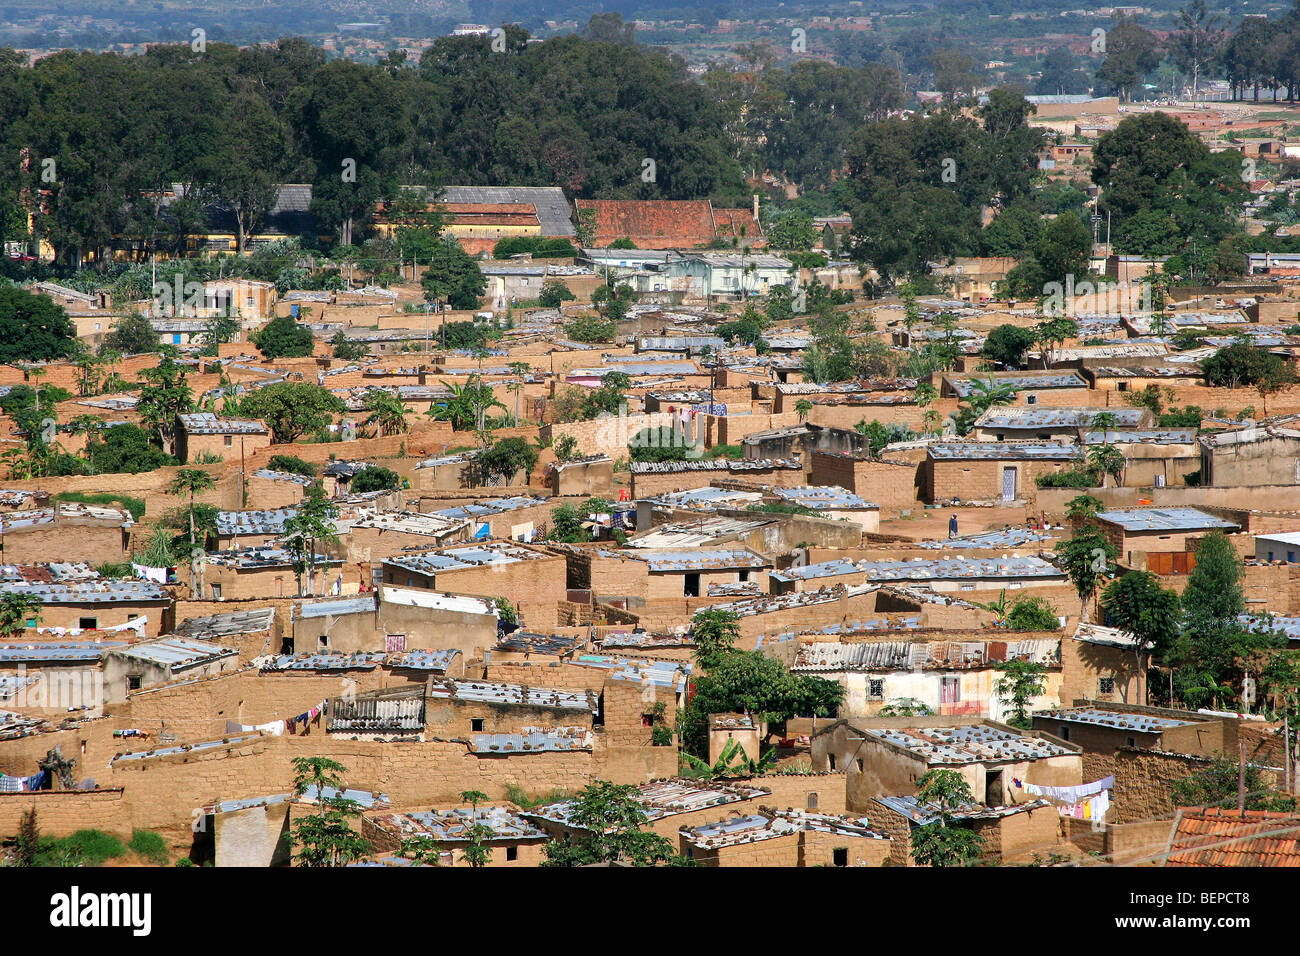 View over houses of the suburb of the city Lubango, Angola, Southern Africa - Stock Image